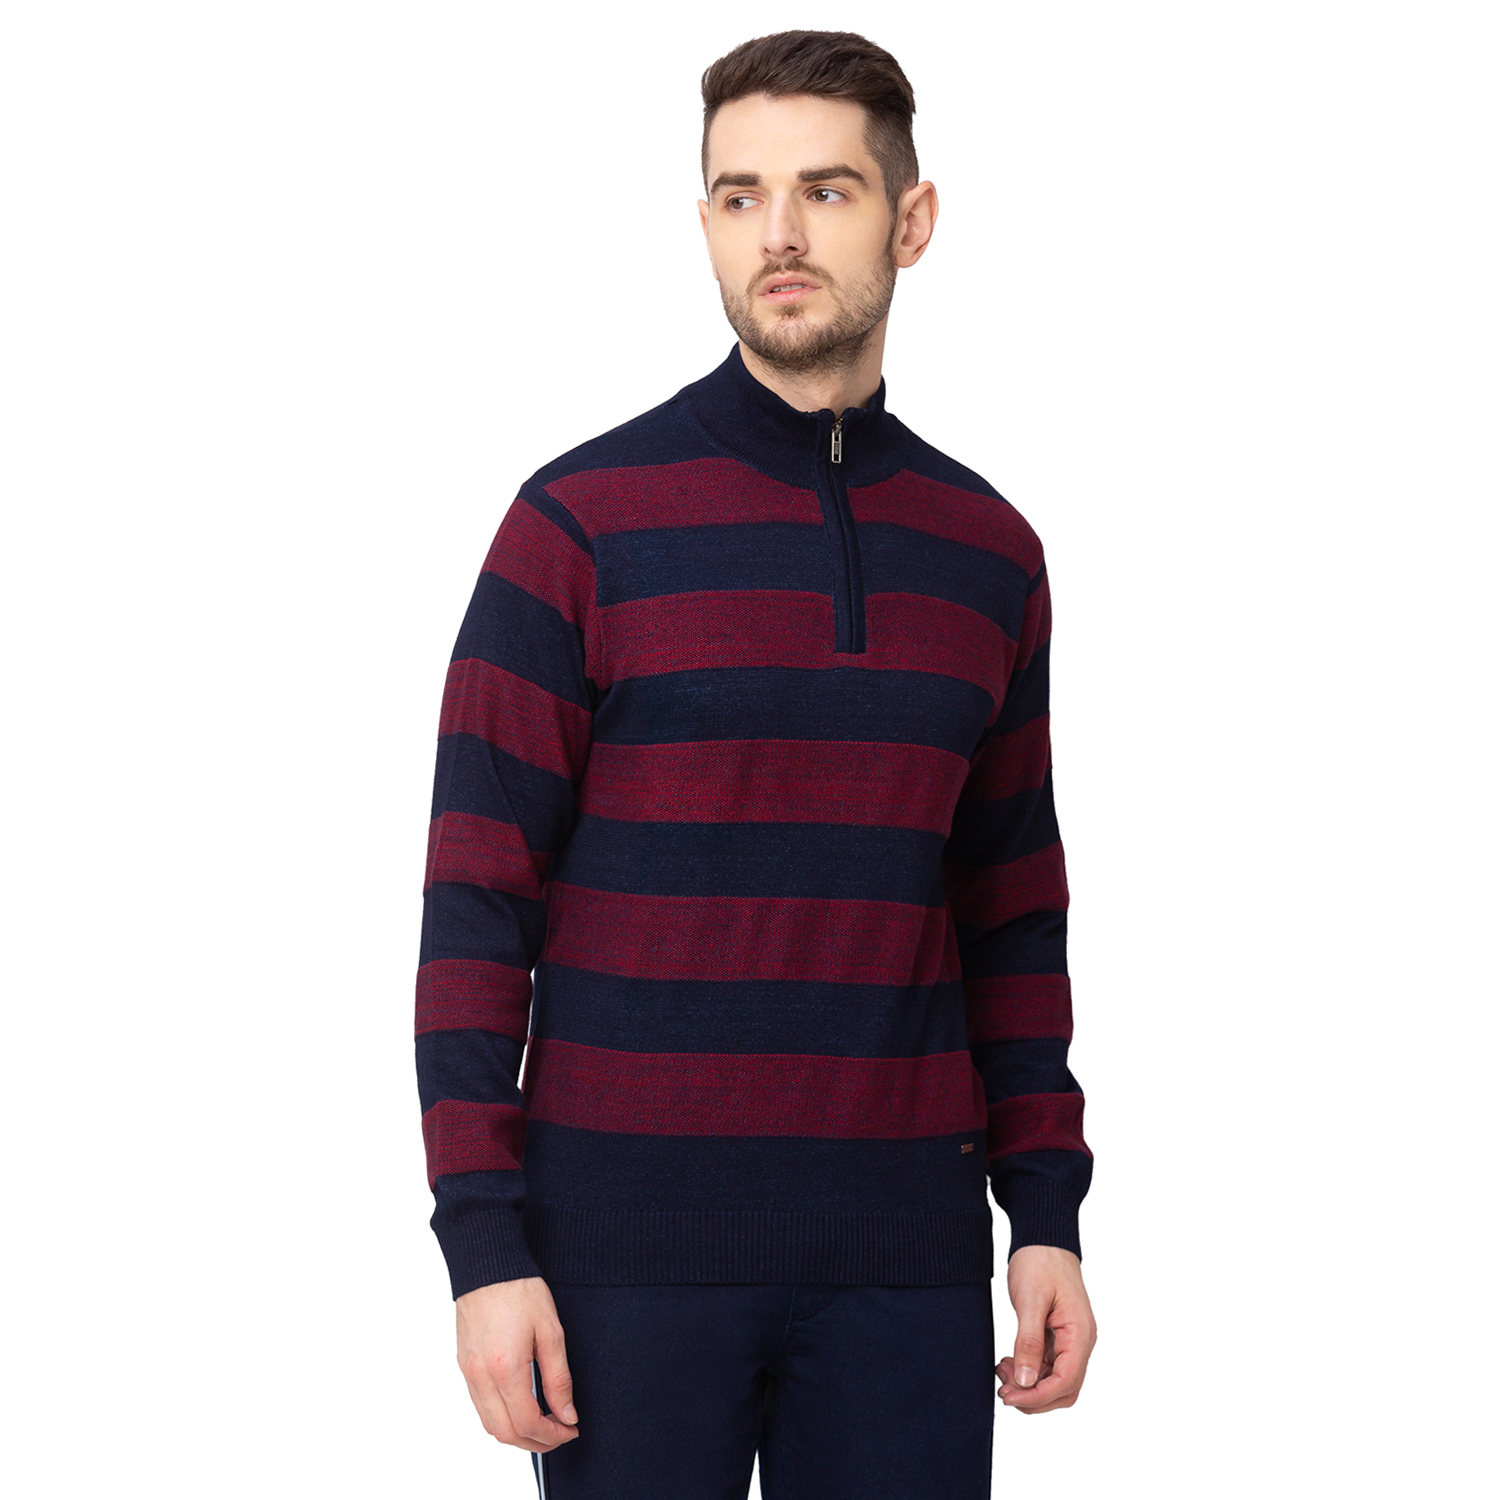 globus   Globus Navy Blue Striped Front-Open Sweater